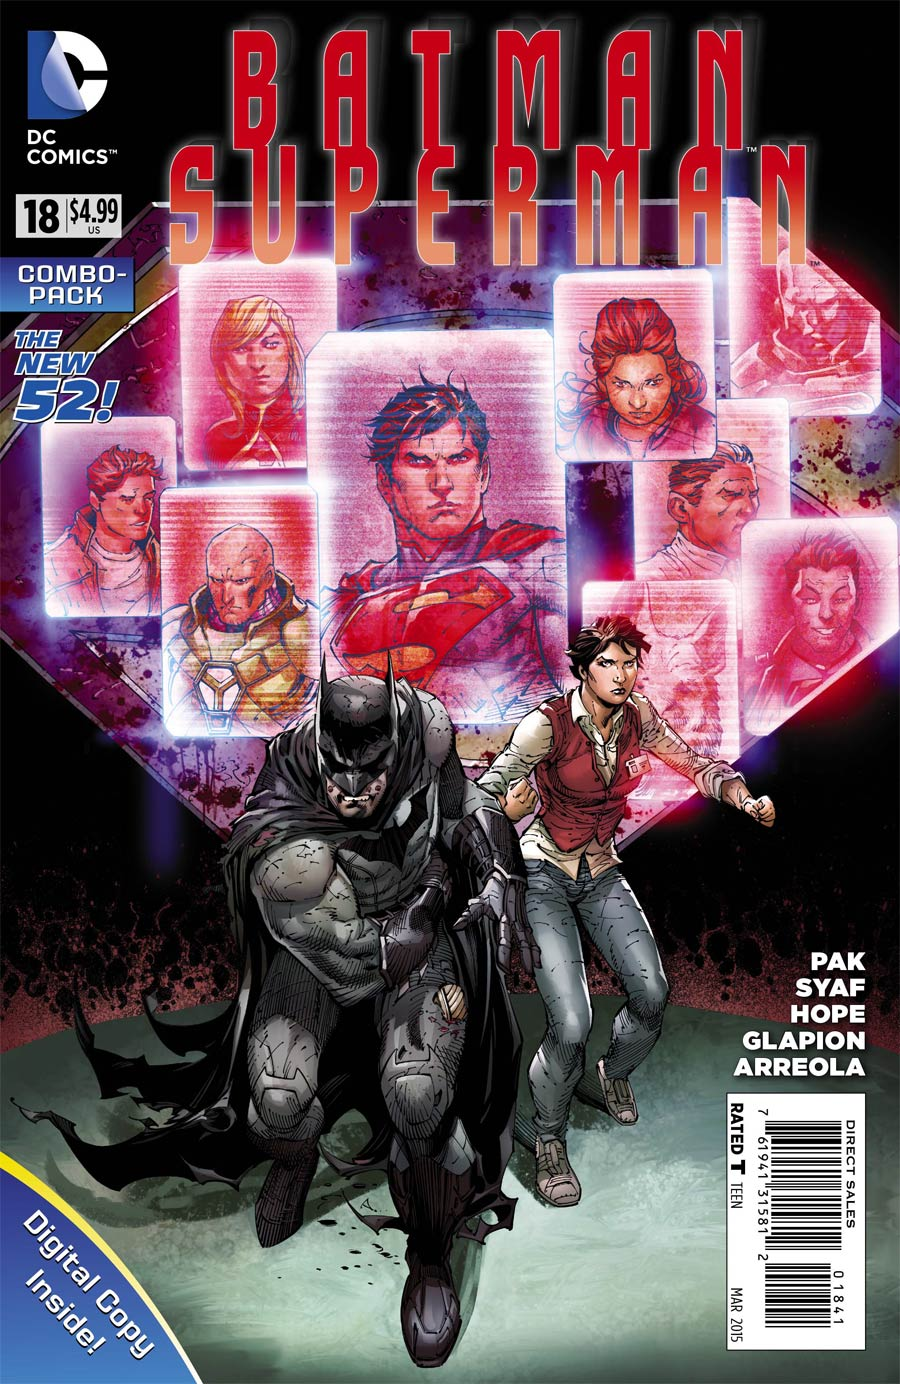 Batman Superman #18 Cover D Combo Pack Without Polybag